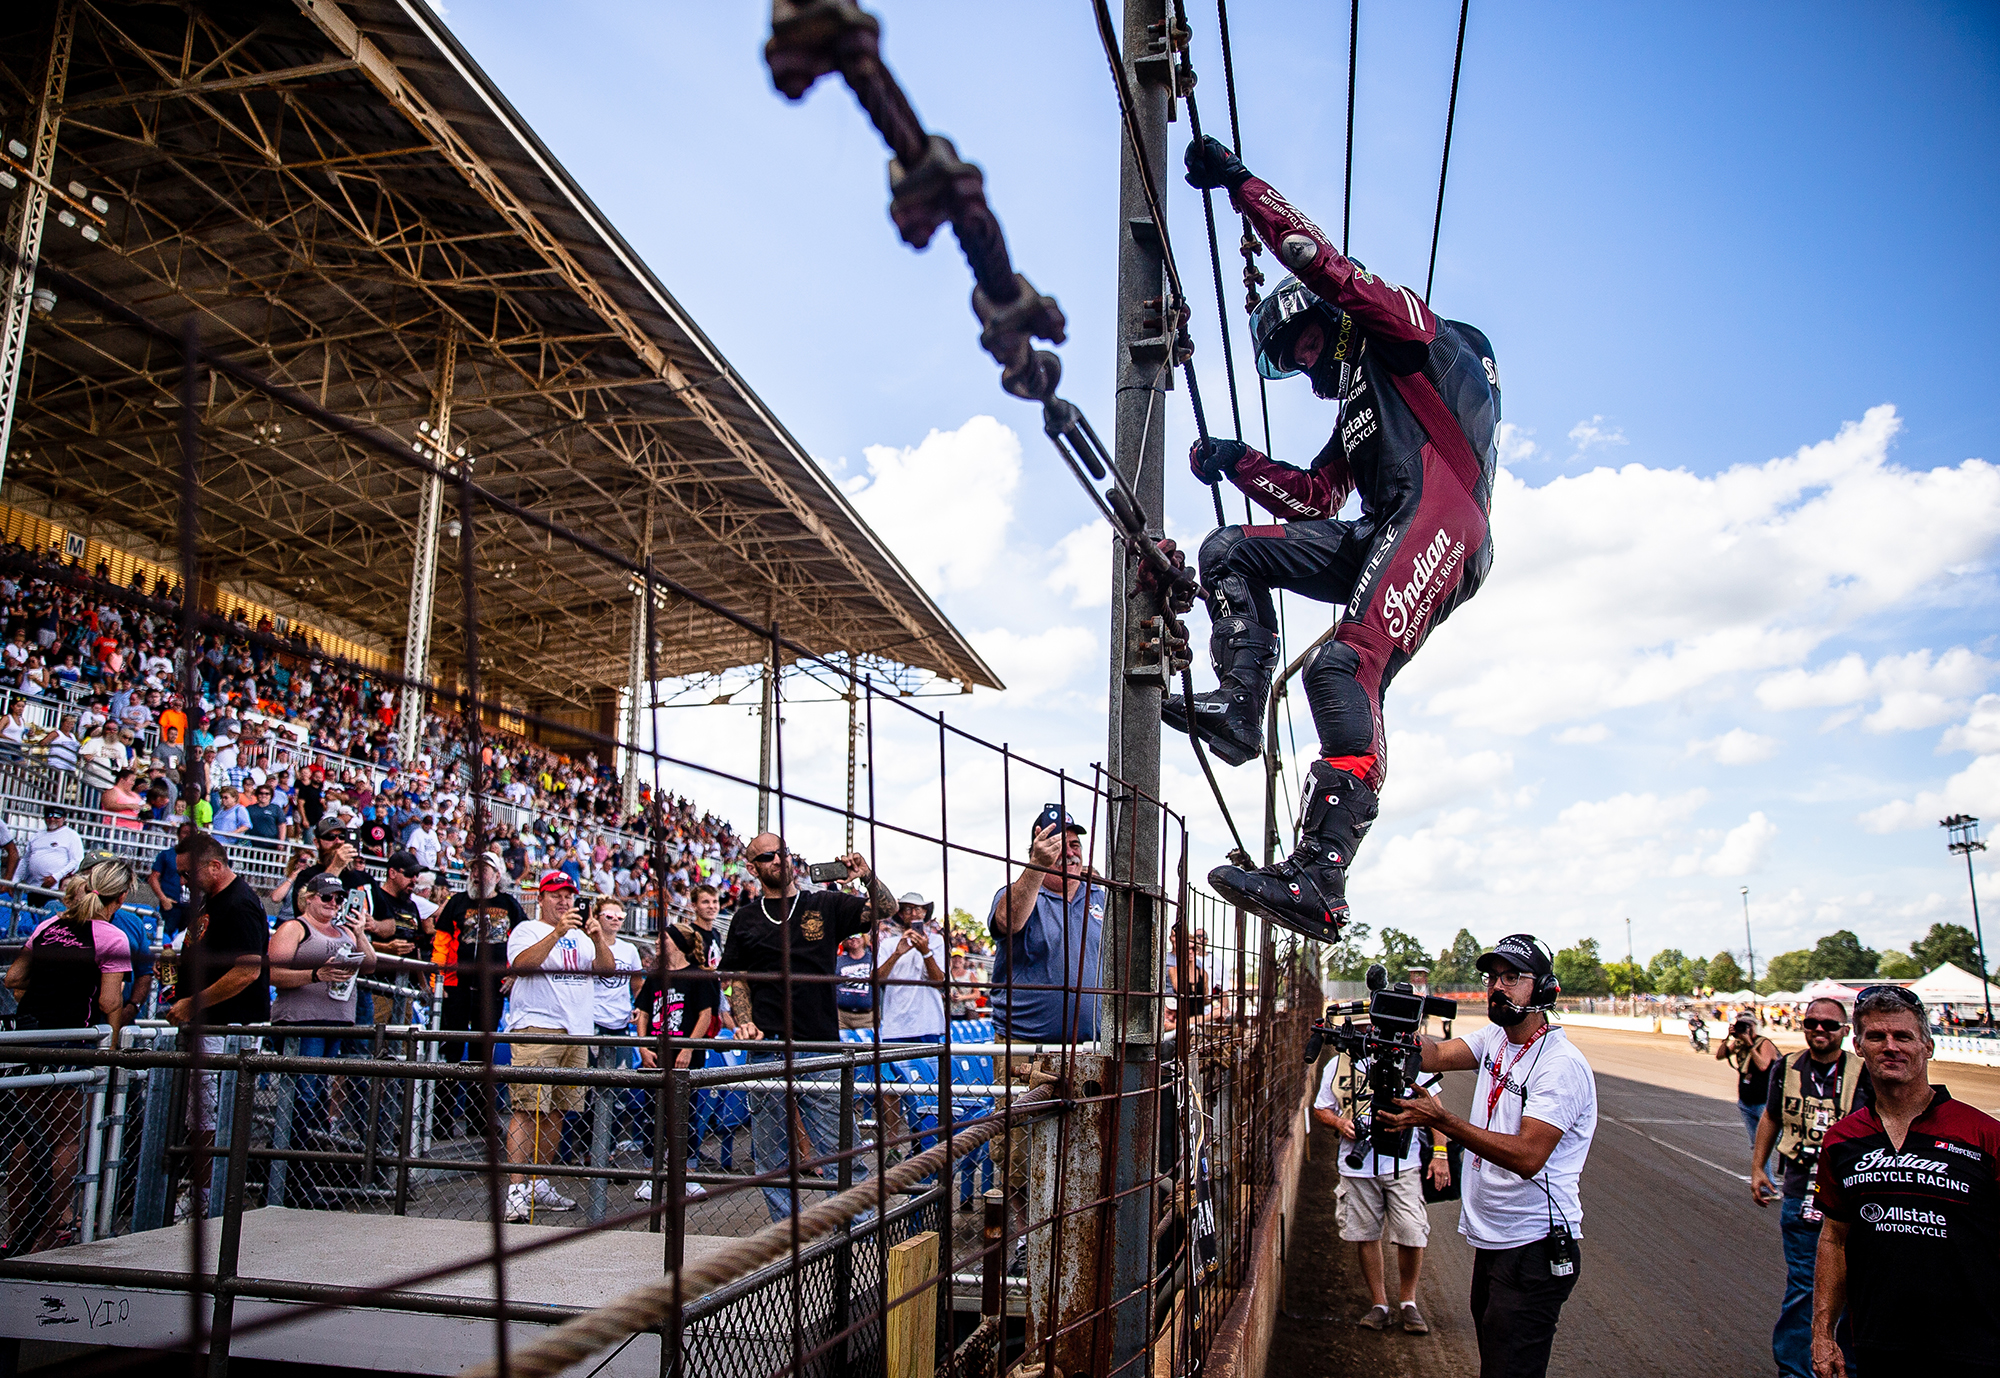 Bryan Smith climbs the fence to celebrate his ninth win on the Springfield Mile during the American Flat Track Springfield Mile II at the Illinois State Fairgrounds, Sunday, Sept. 2, 2018, in Springfield, Ill. [Justin L. Fowler/The State Journal-Register]